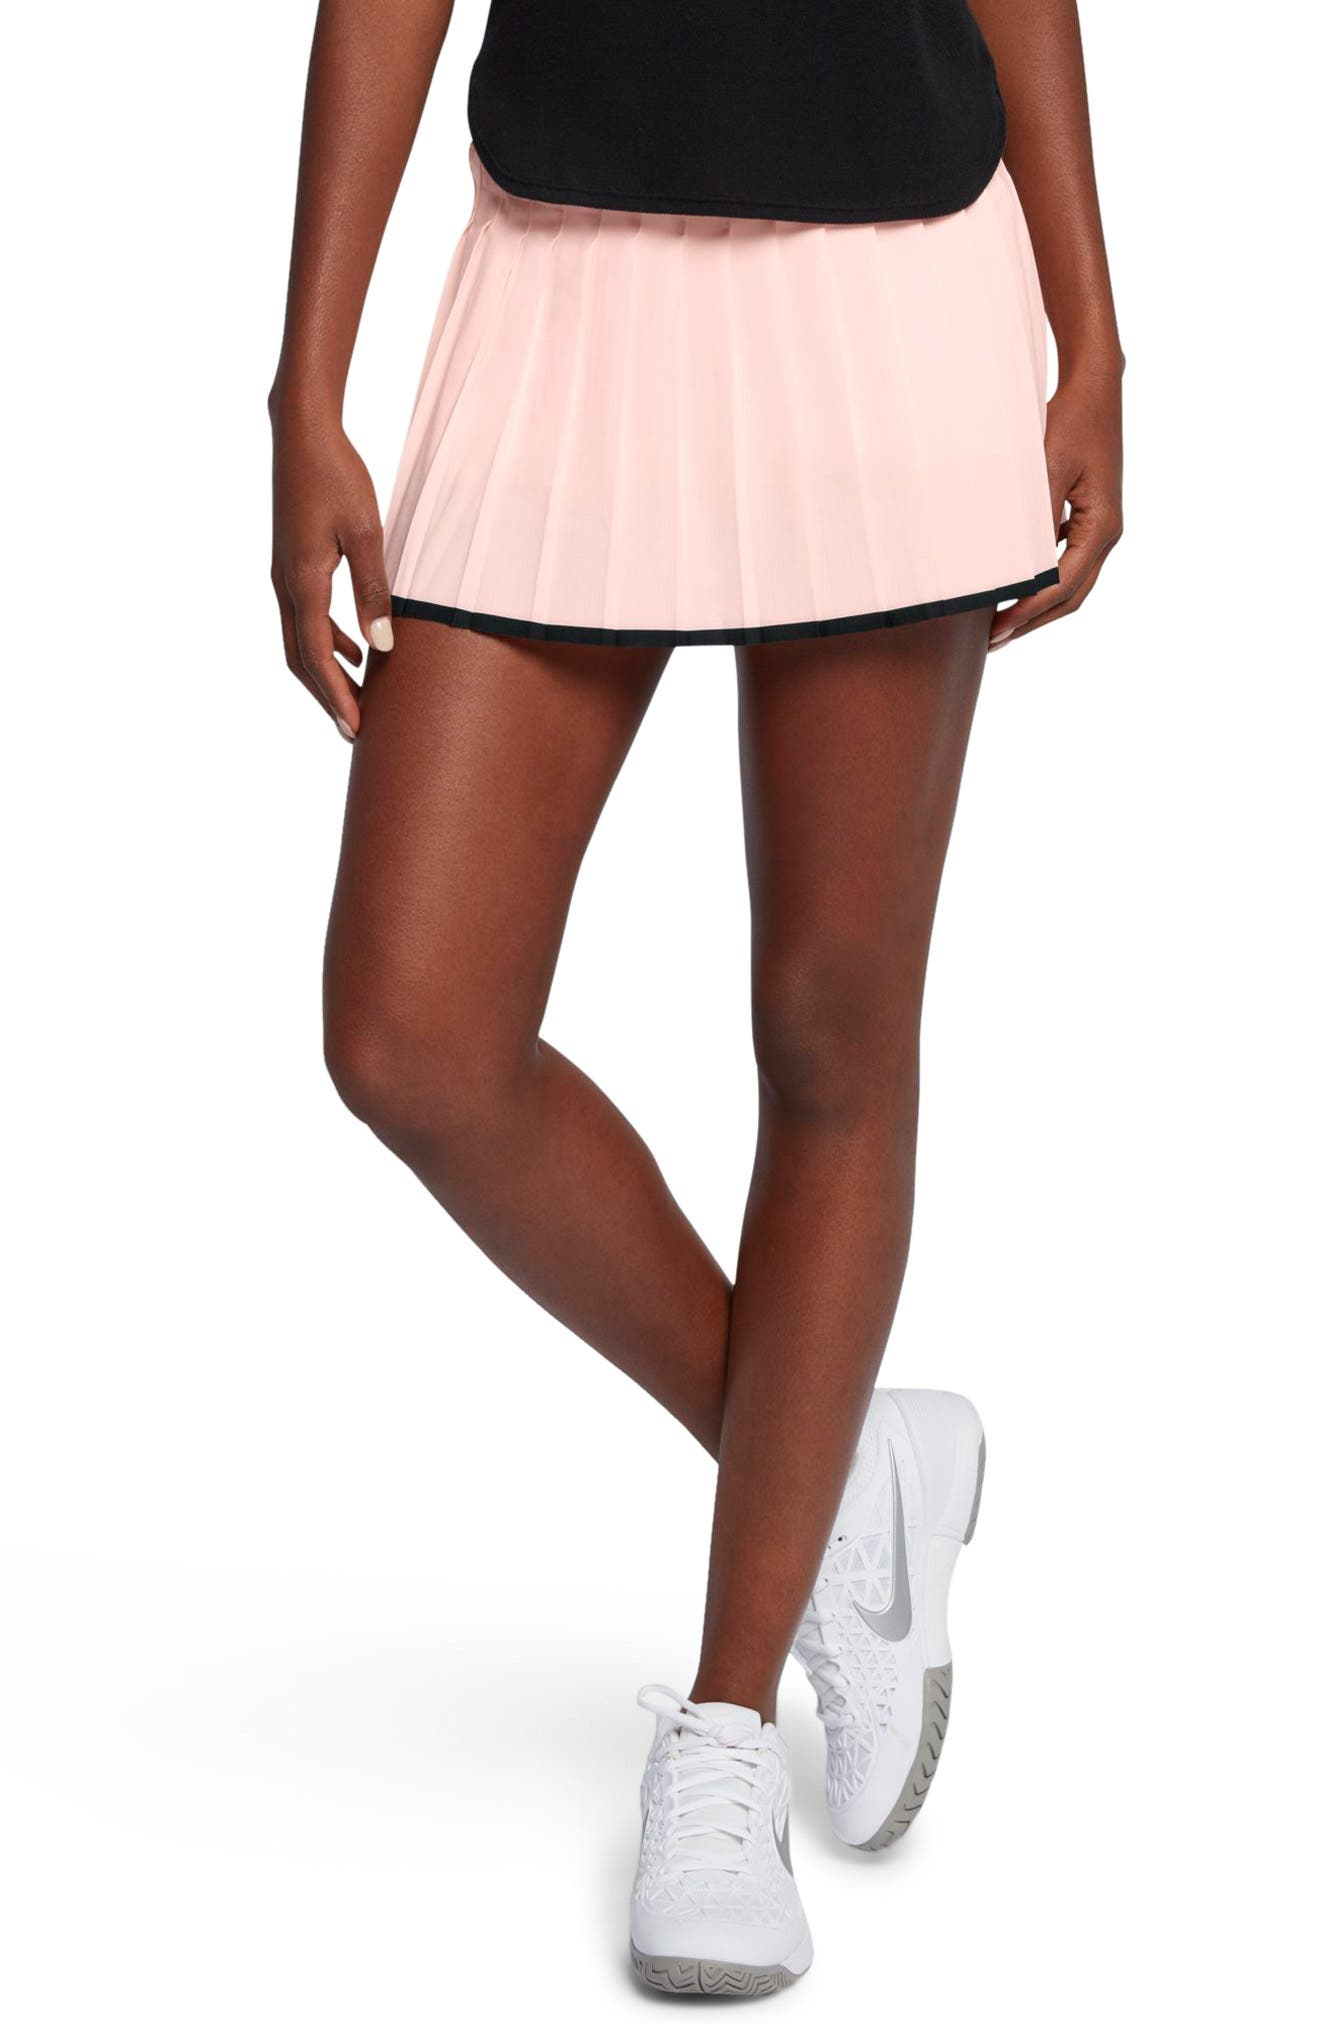 Women's Court Victory Tennis Skirt,                         Main,                         color, 959